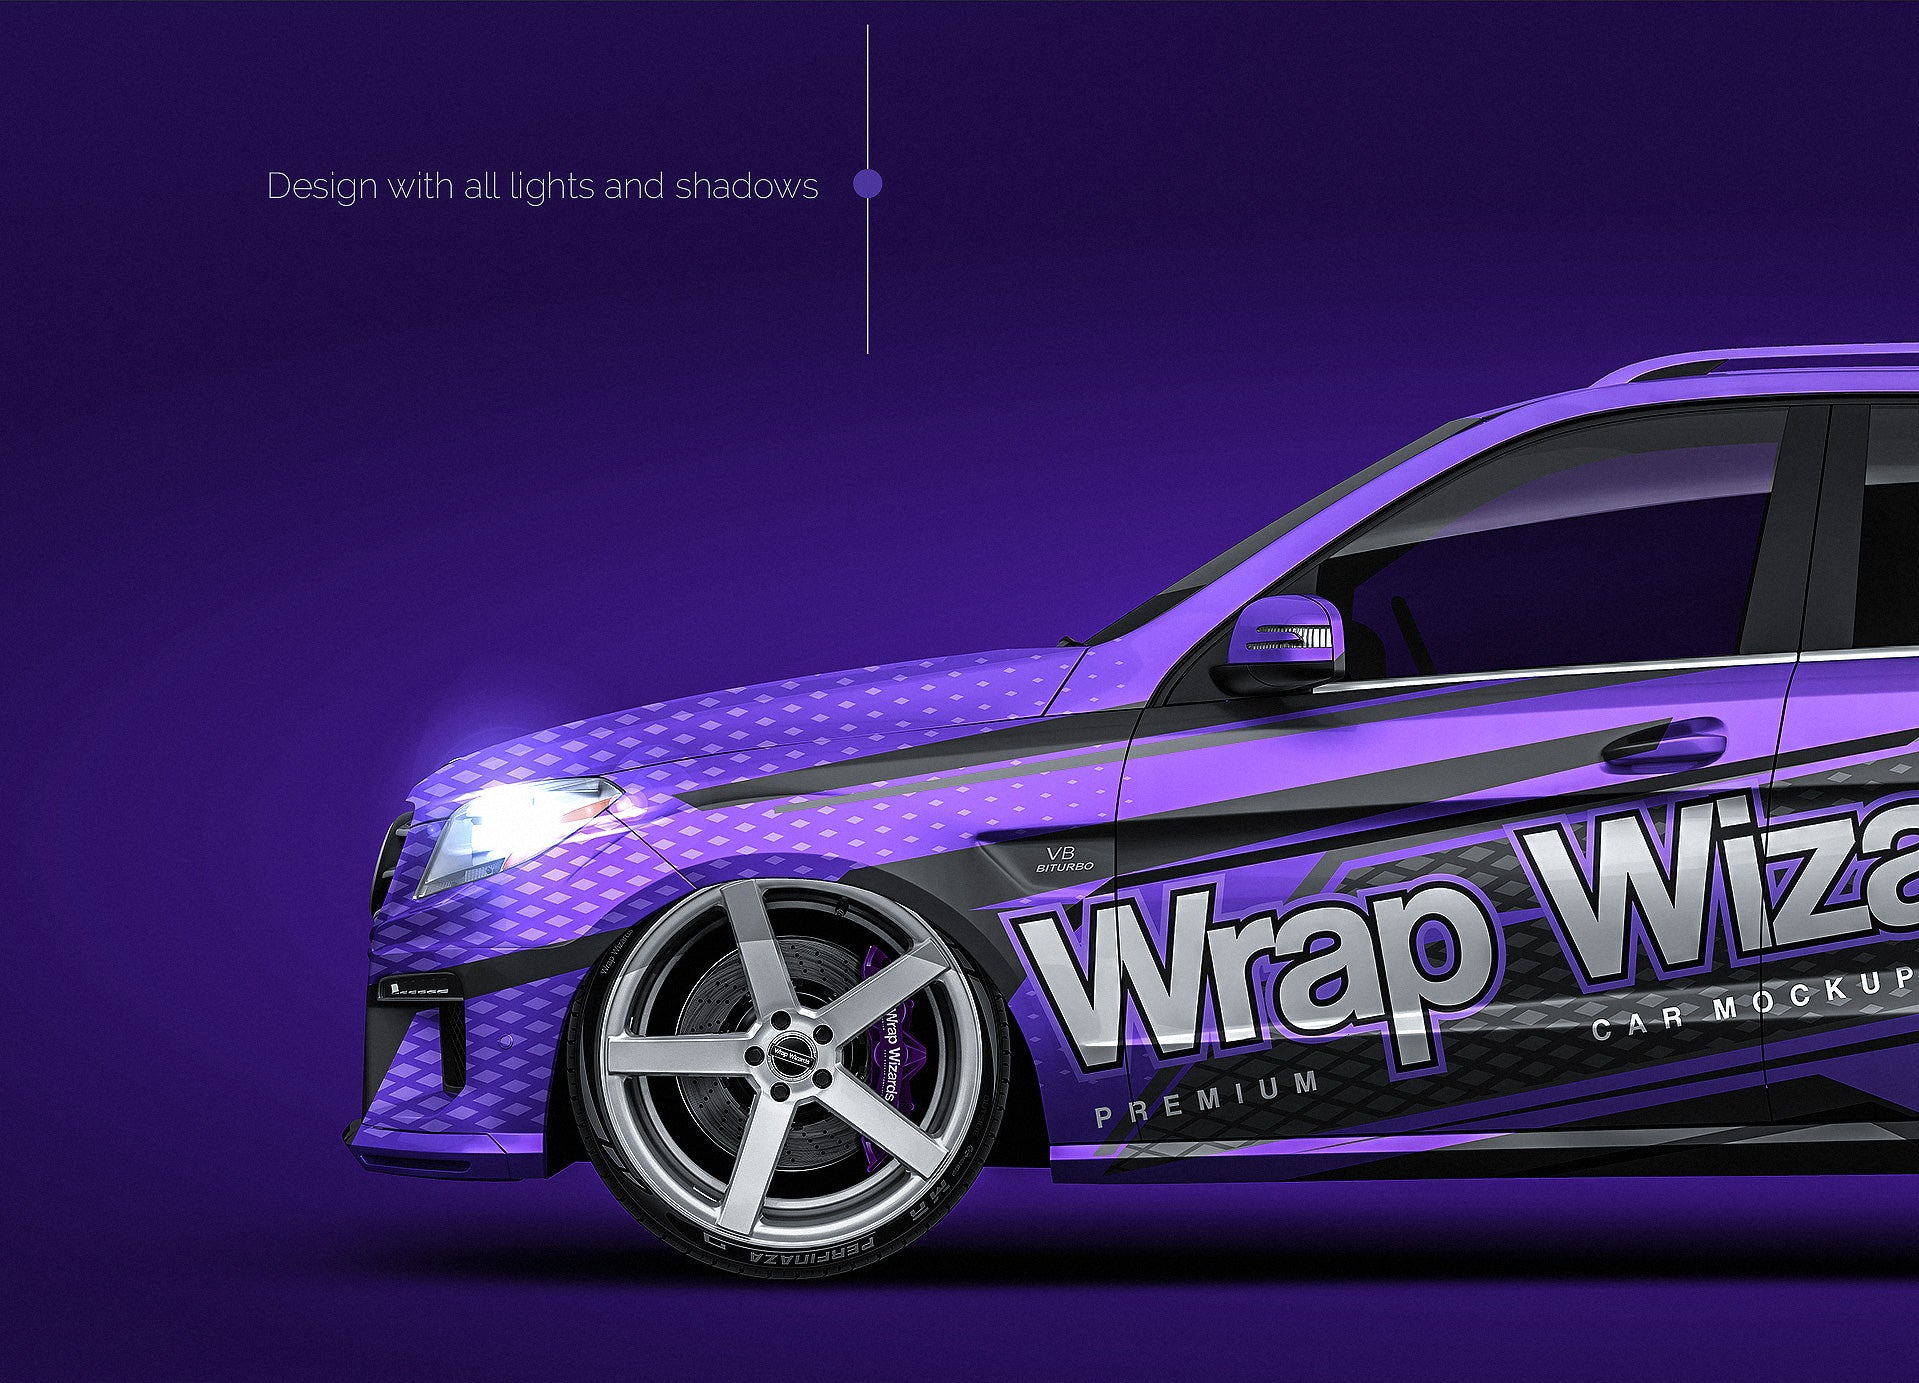 Mercedes-Benz ML W166 AMG 2012 glossy finish - all sides Car Mockup Template.psd